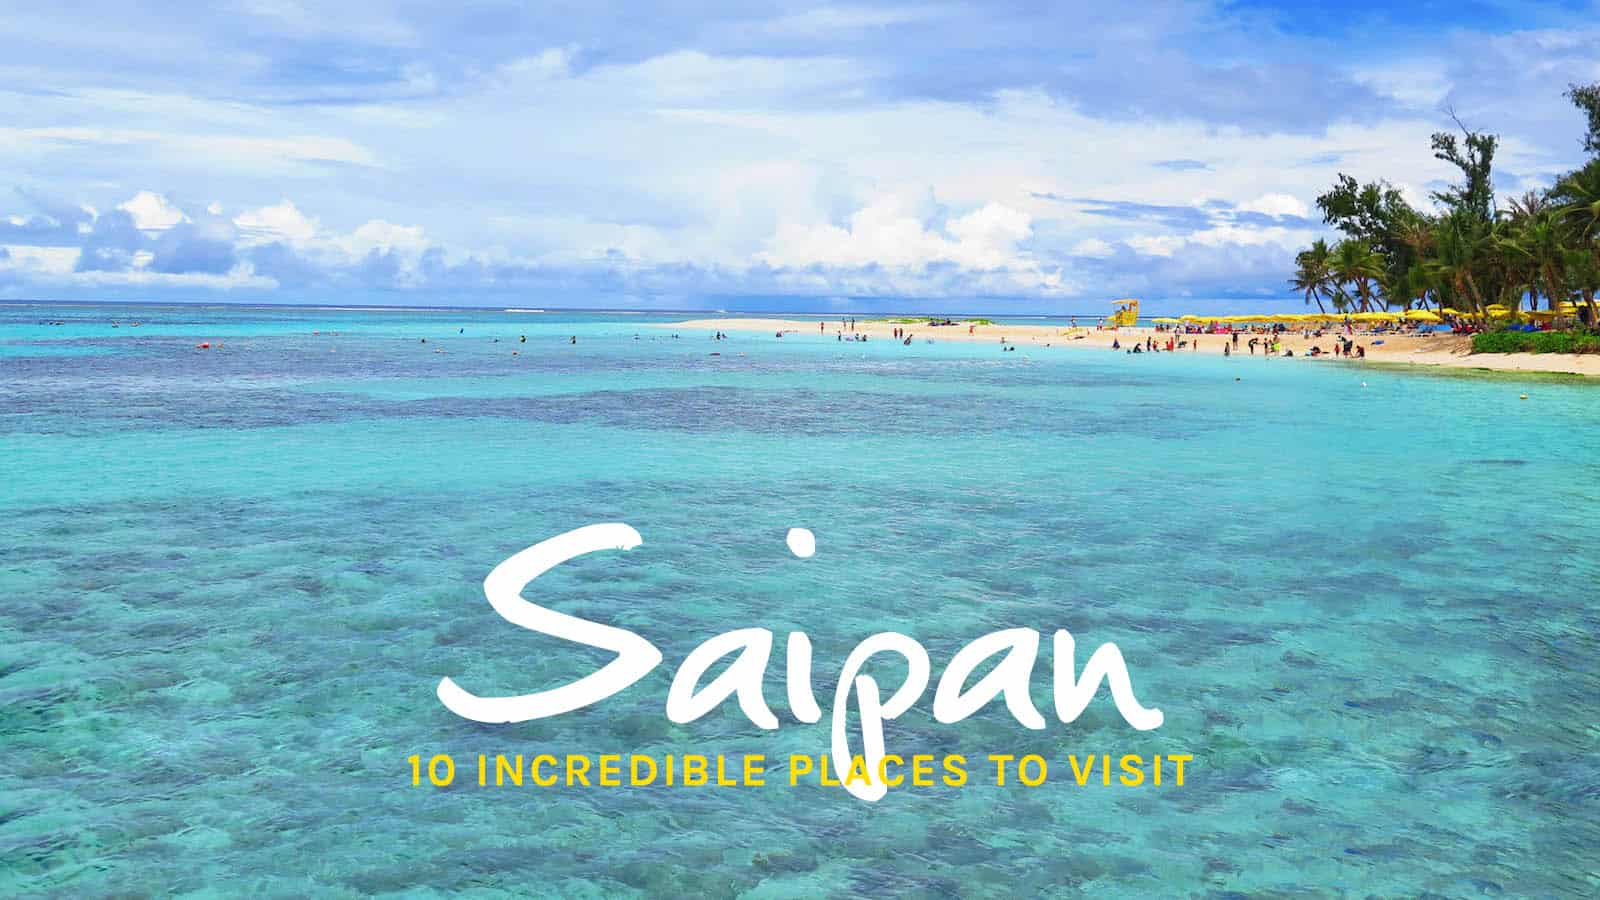 10 BEST PLACES TO VISIT IN SAIPAN (Plus FREE Attractions)